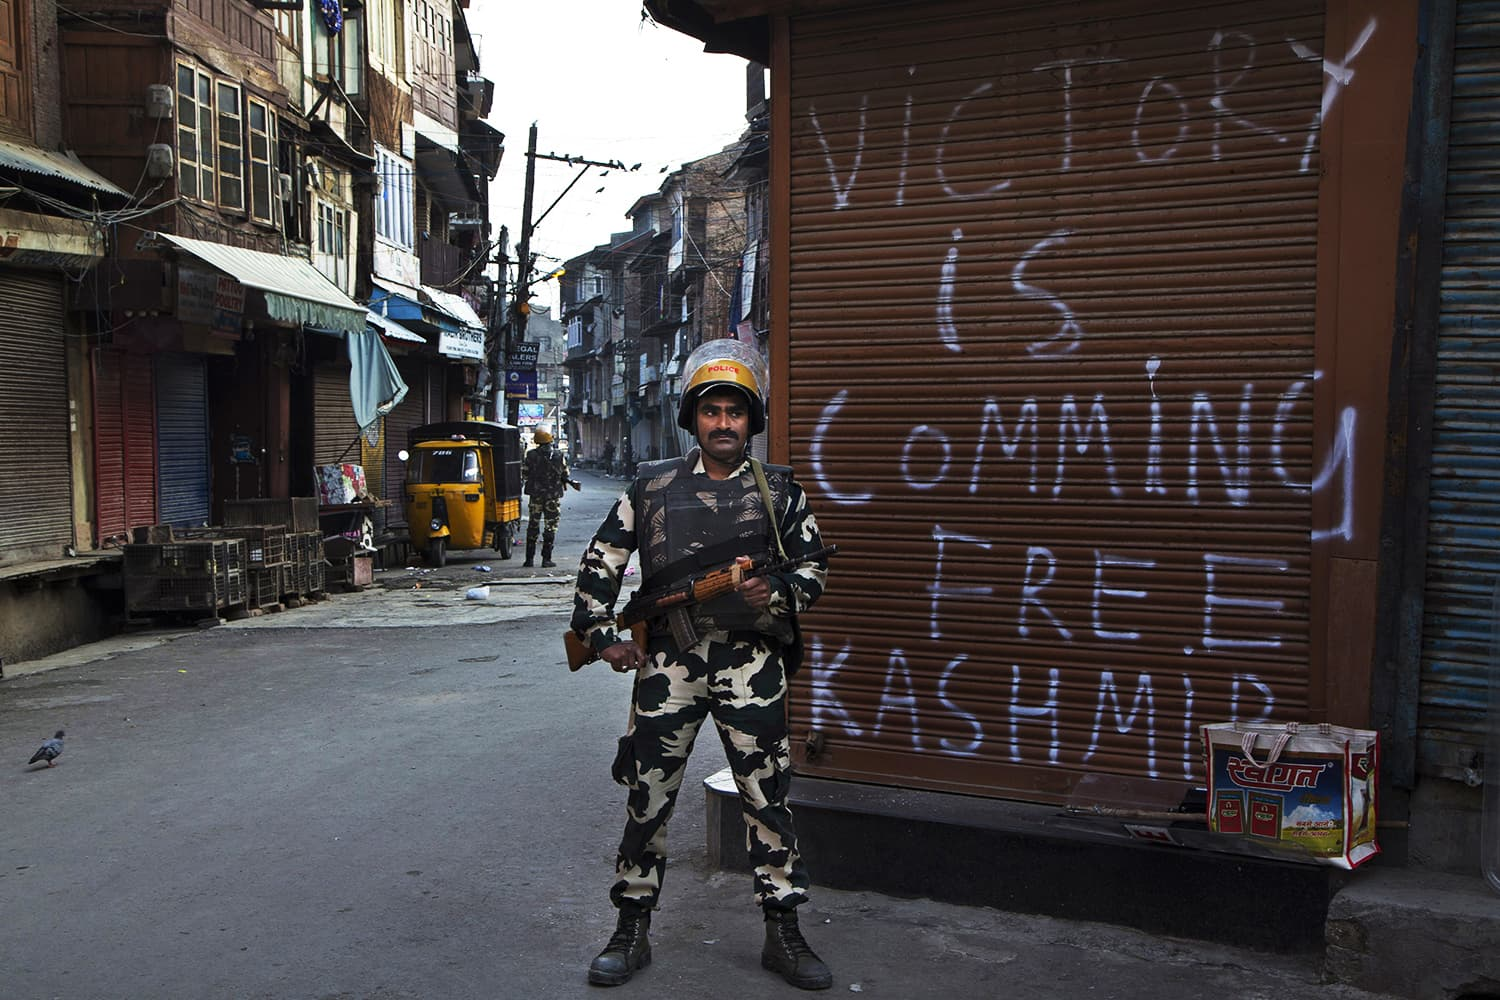 An Indian paramilitary soldier stands guard during curfew in Srinagar, India-held Kashmir, Tuesday, Sept. 13, 2016. ─ AP